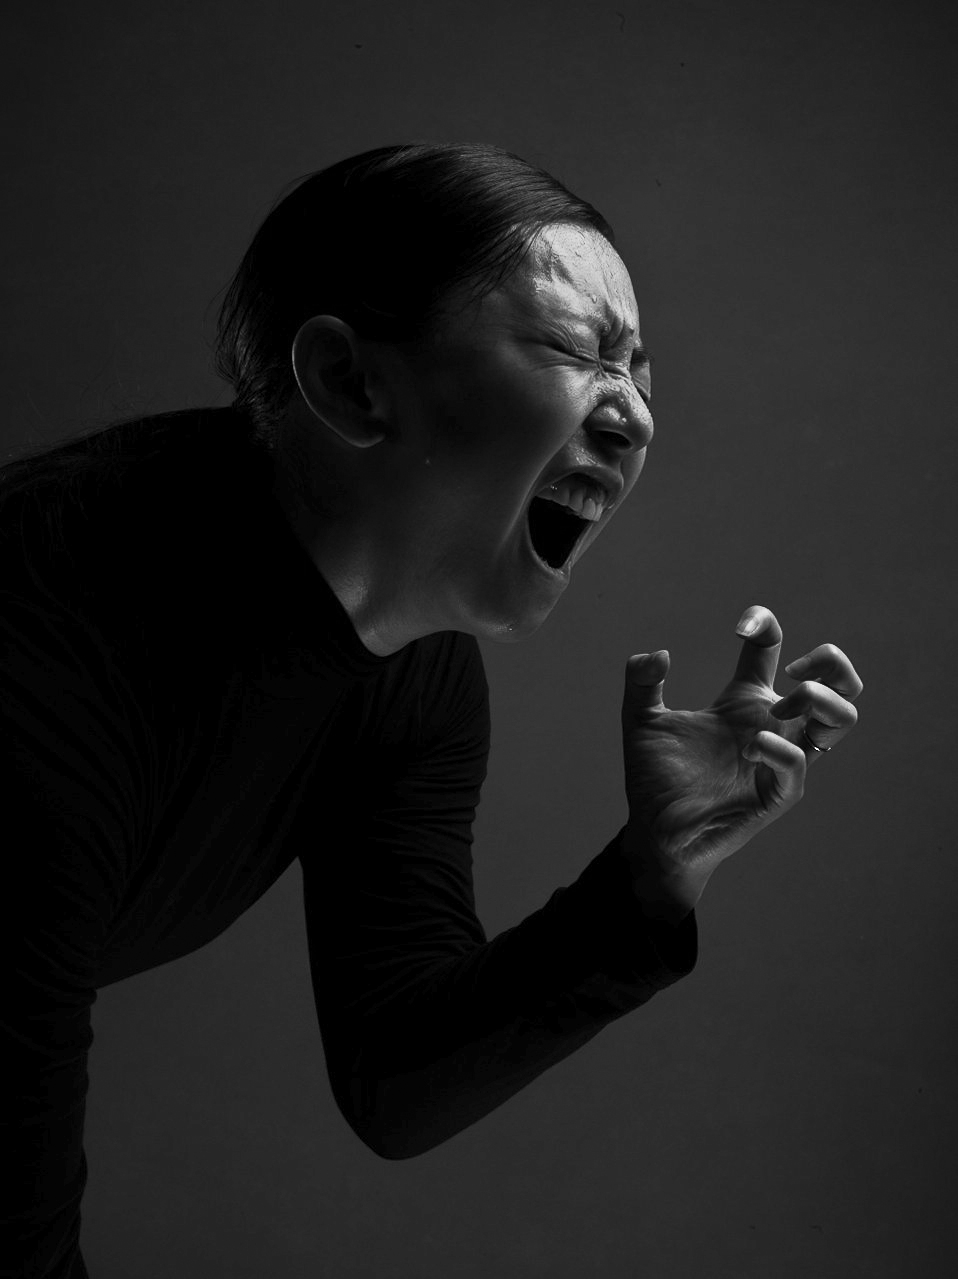 Maiko Ikegaki in Tres Mort - Tremor at Howl Happening for Vangeline Theater in 2015. Photo by Celeste Sloman.